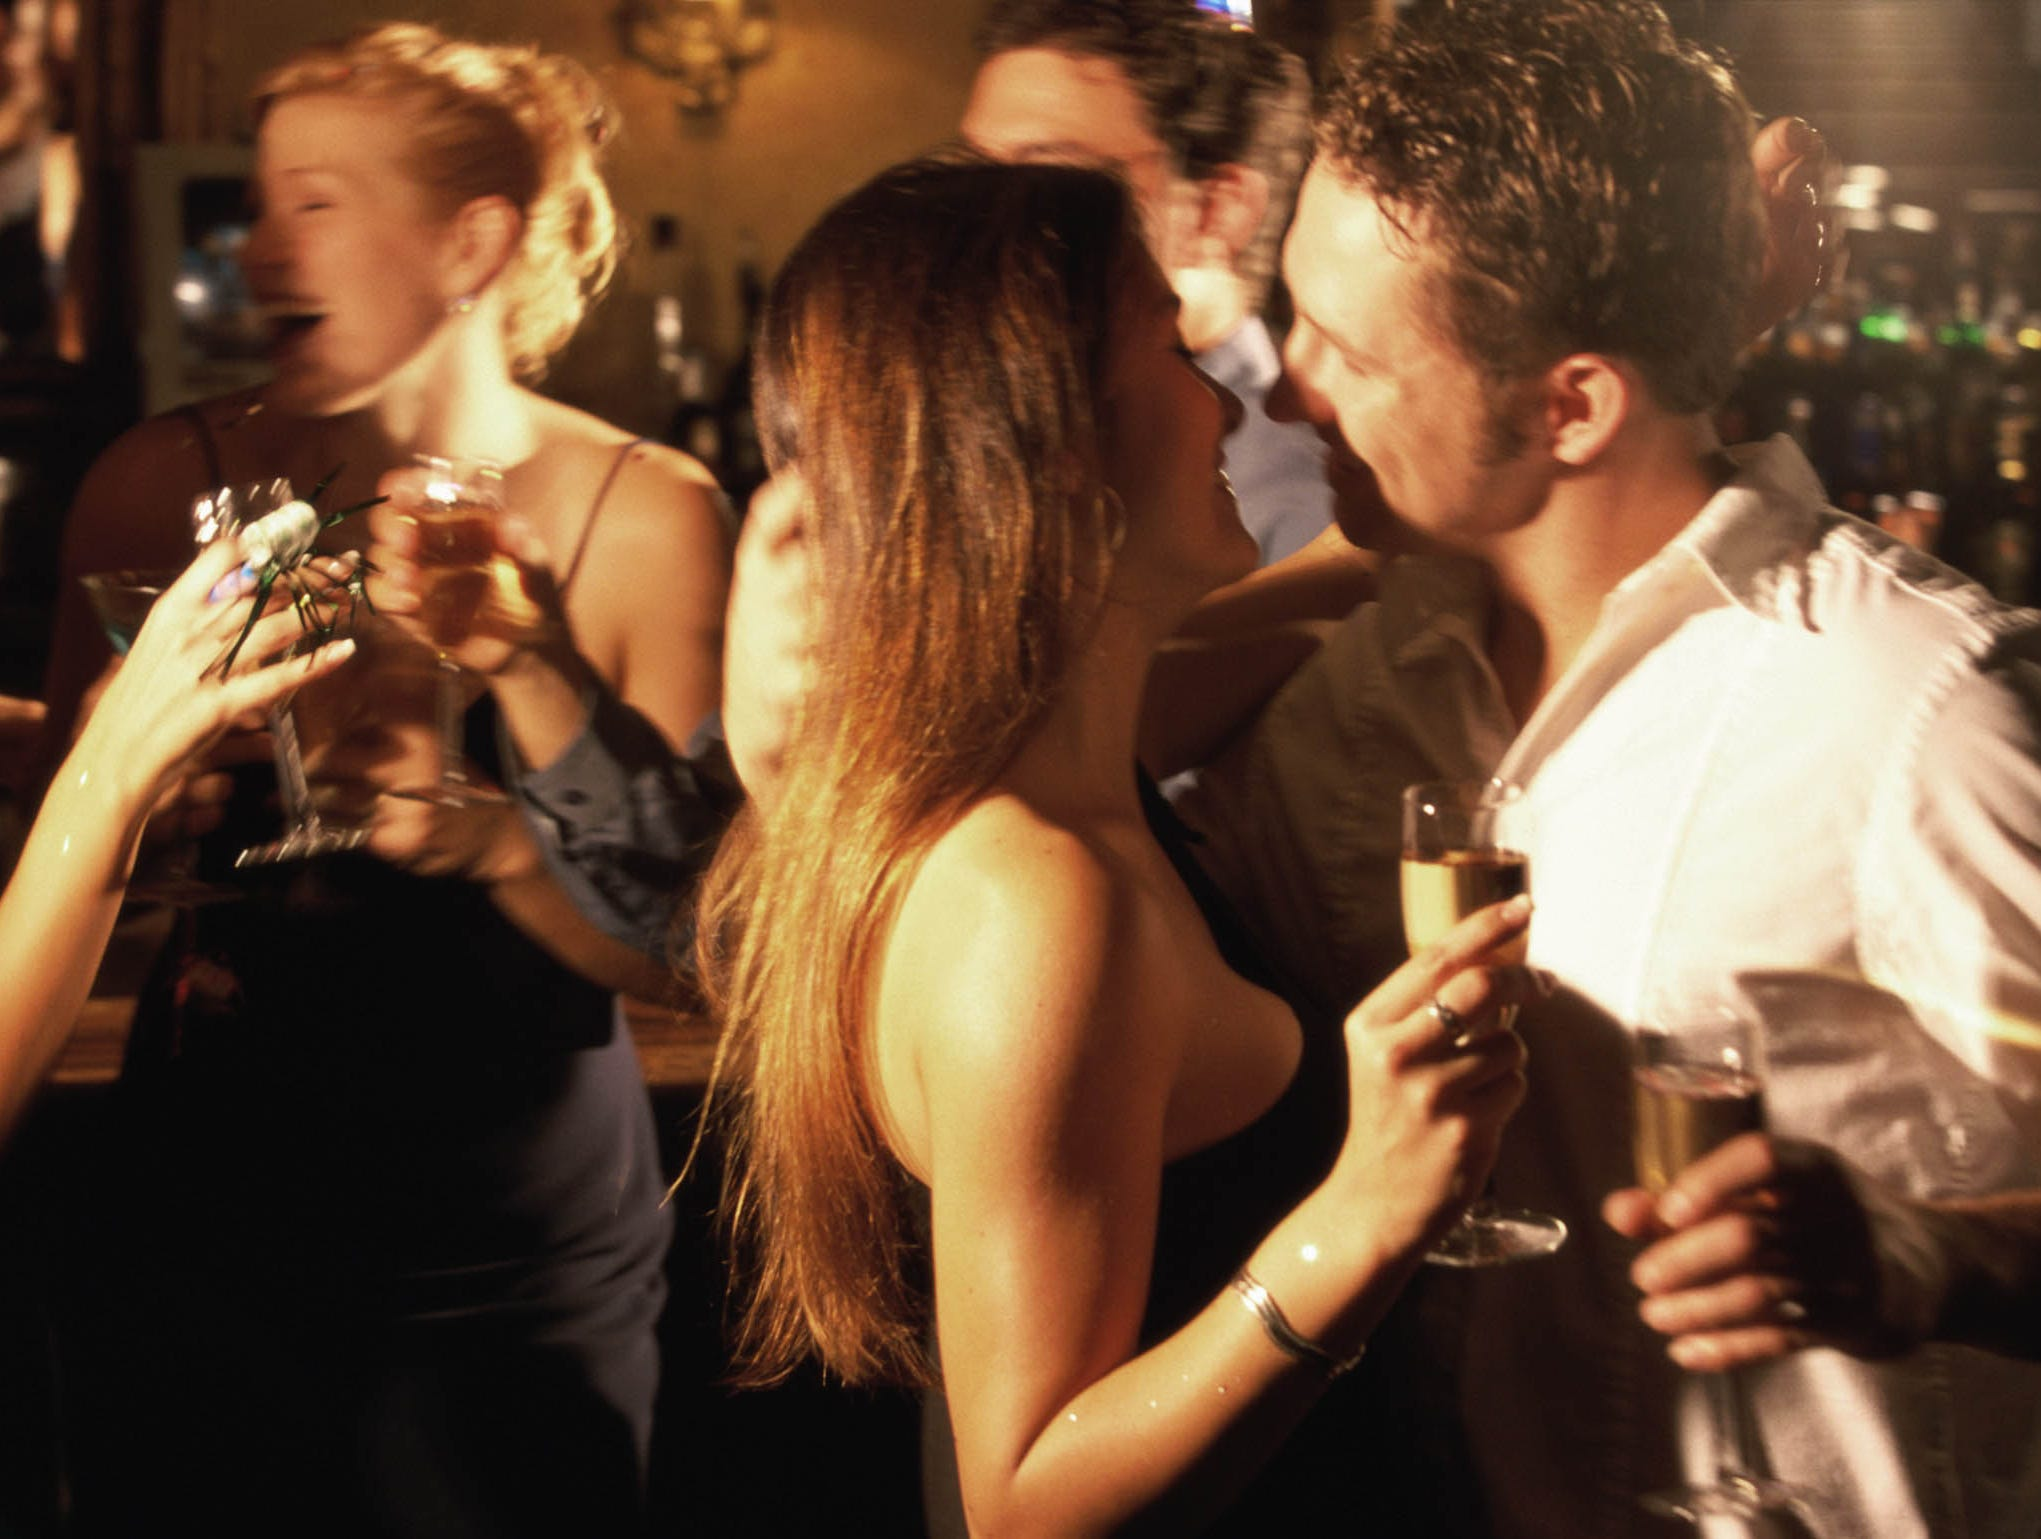 UP researchers: College hookup culture exaggerated